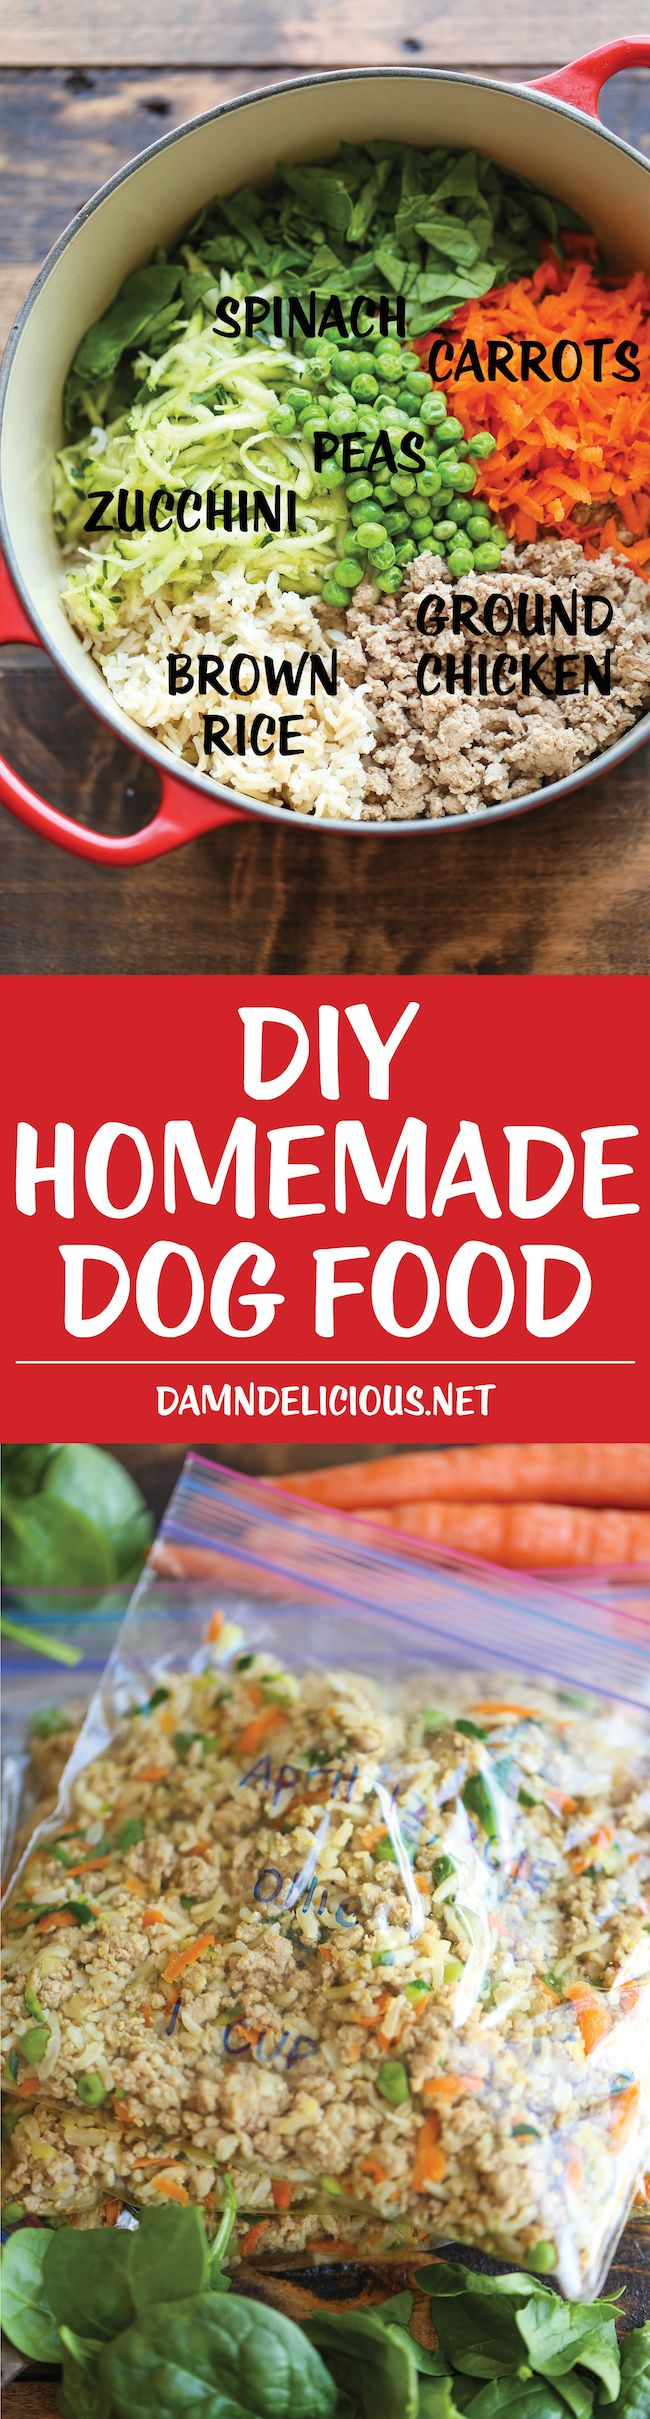 Diy homemade dog food recipe pinterest homemade dog food diy homemade dog food keep your dog healthy and fit with this easy peasy homemade forumfinder